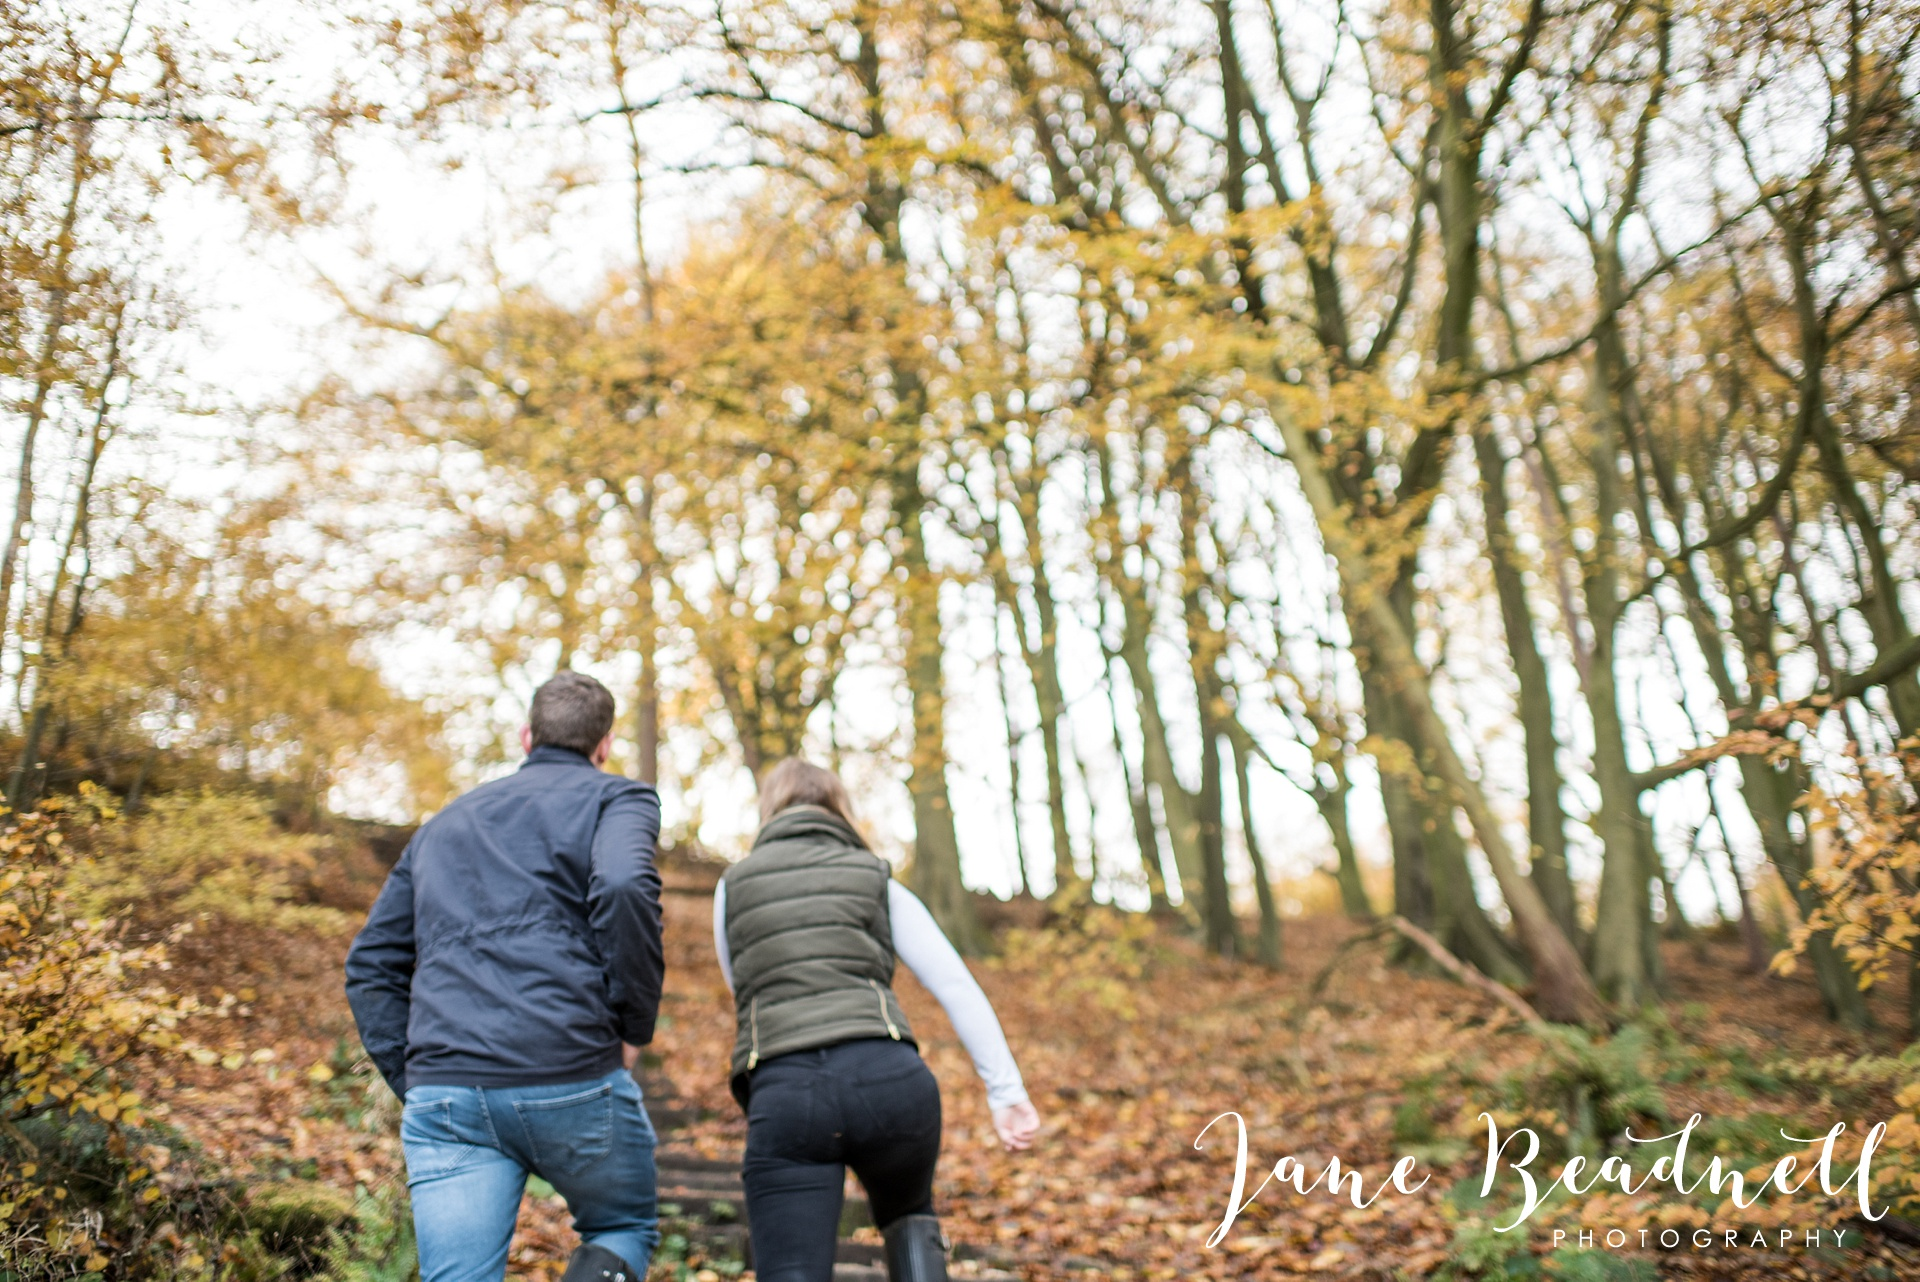 engagement-shoot-yorkshire-wedding-photographer-jane-beadnell-photography-uk-and-destination-wedding-photographer-engagement-shoot_0031